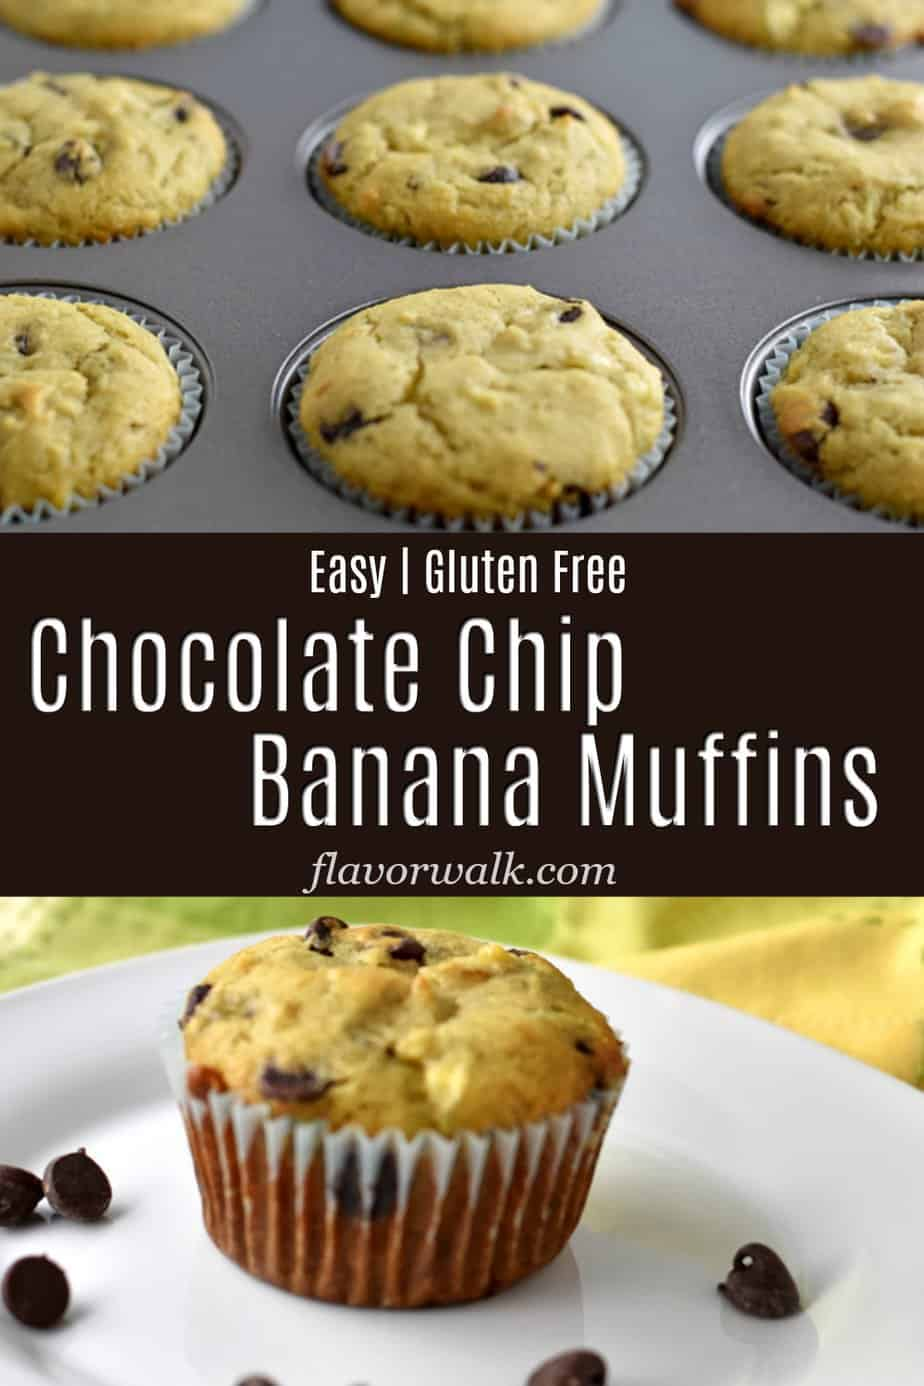 Top image is muffin pan filled with baked gluten free chocolate chip banana muffins, middle image is brown text overlay, bottom image is 1 gluten free chocolate chip banana muffin on a white plate with a few chocolate chips.